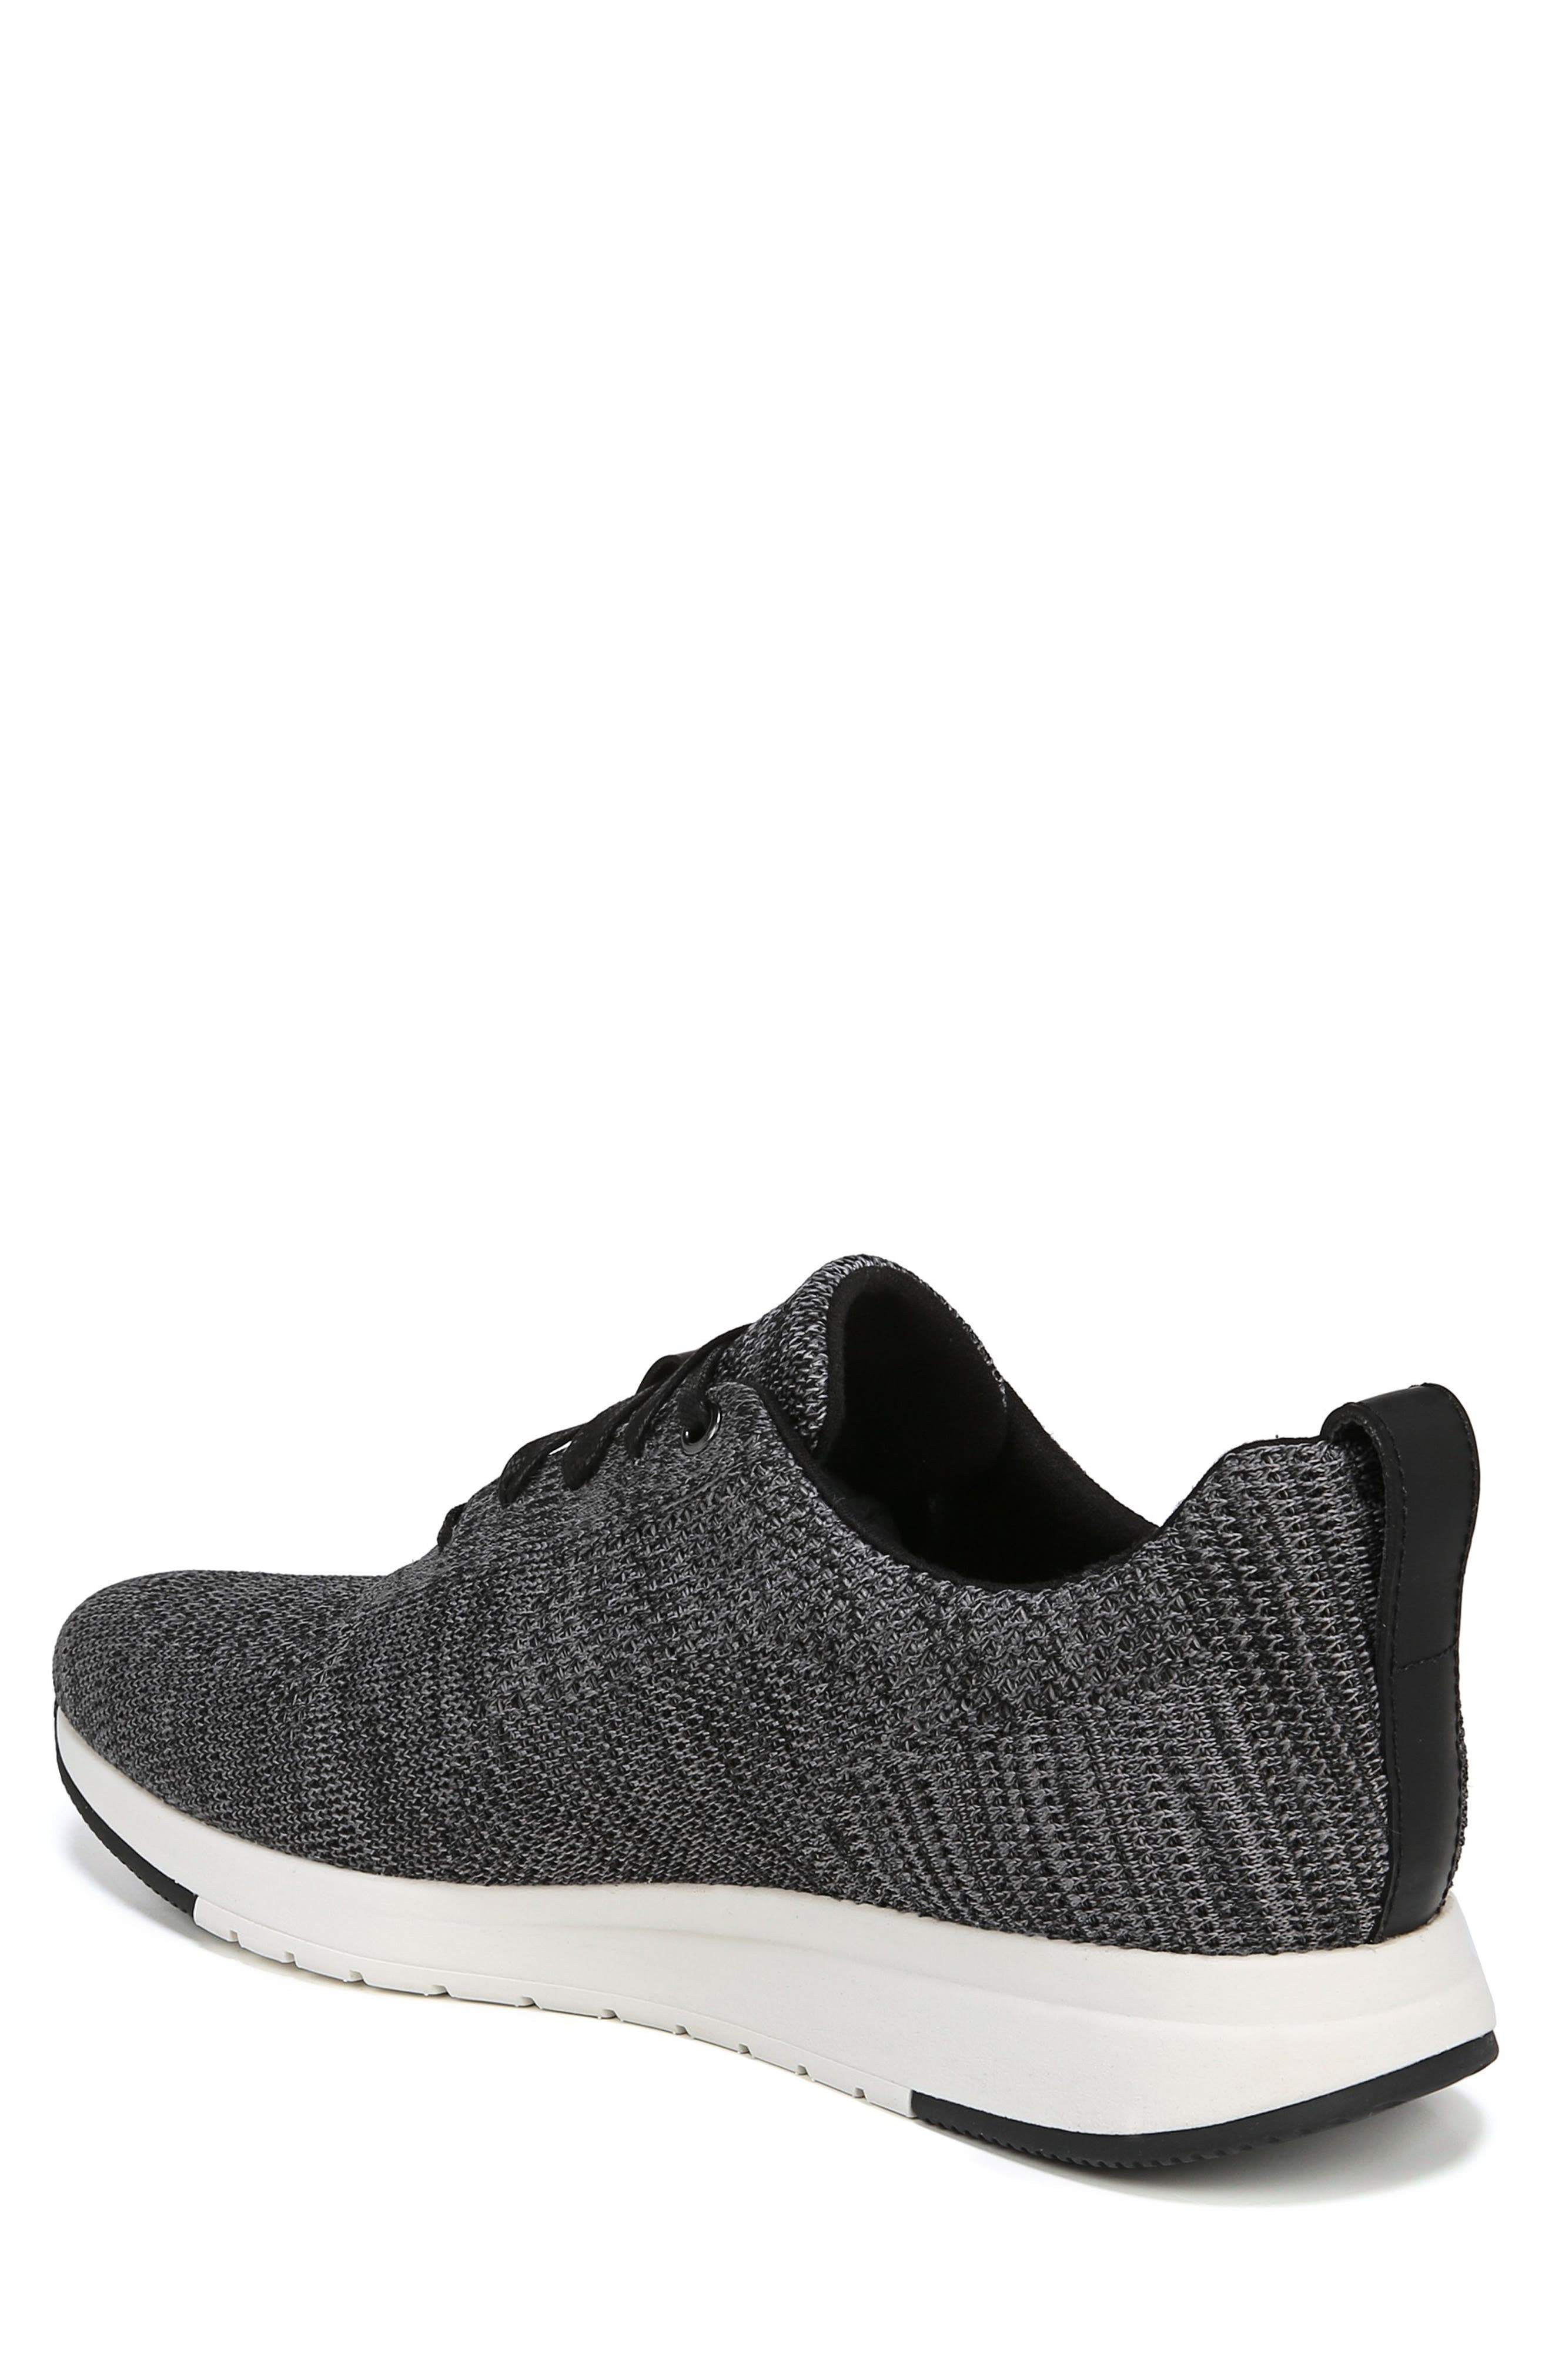 VINCE, Palo Knit Sneaker, Alternate thumbnail 2, color, MARL GREY/ BLACK